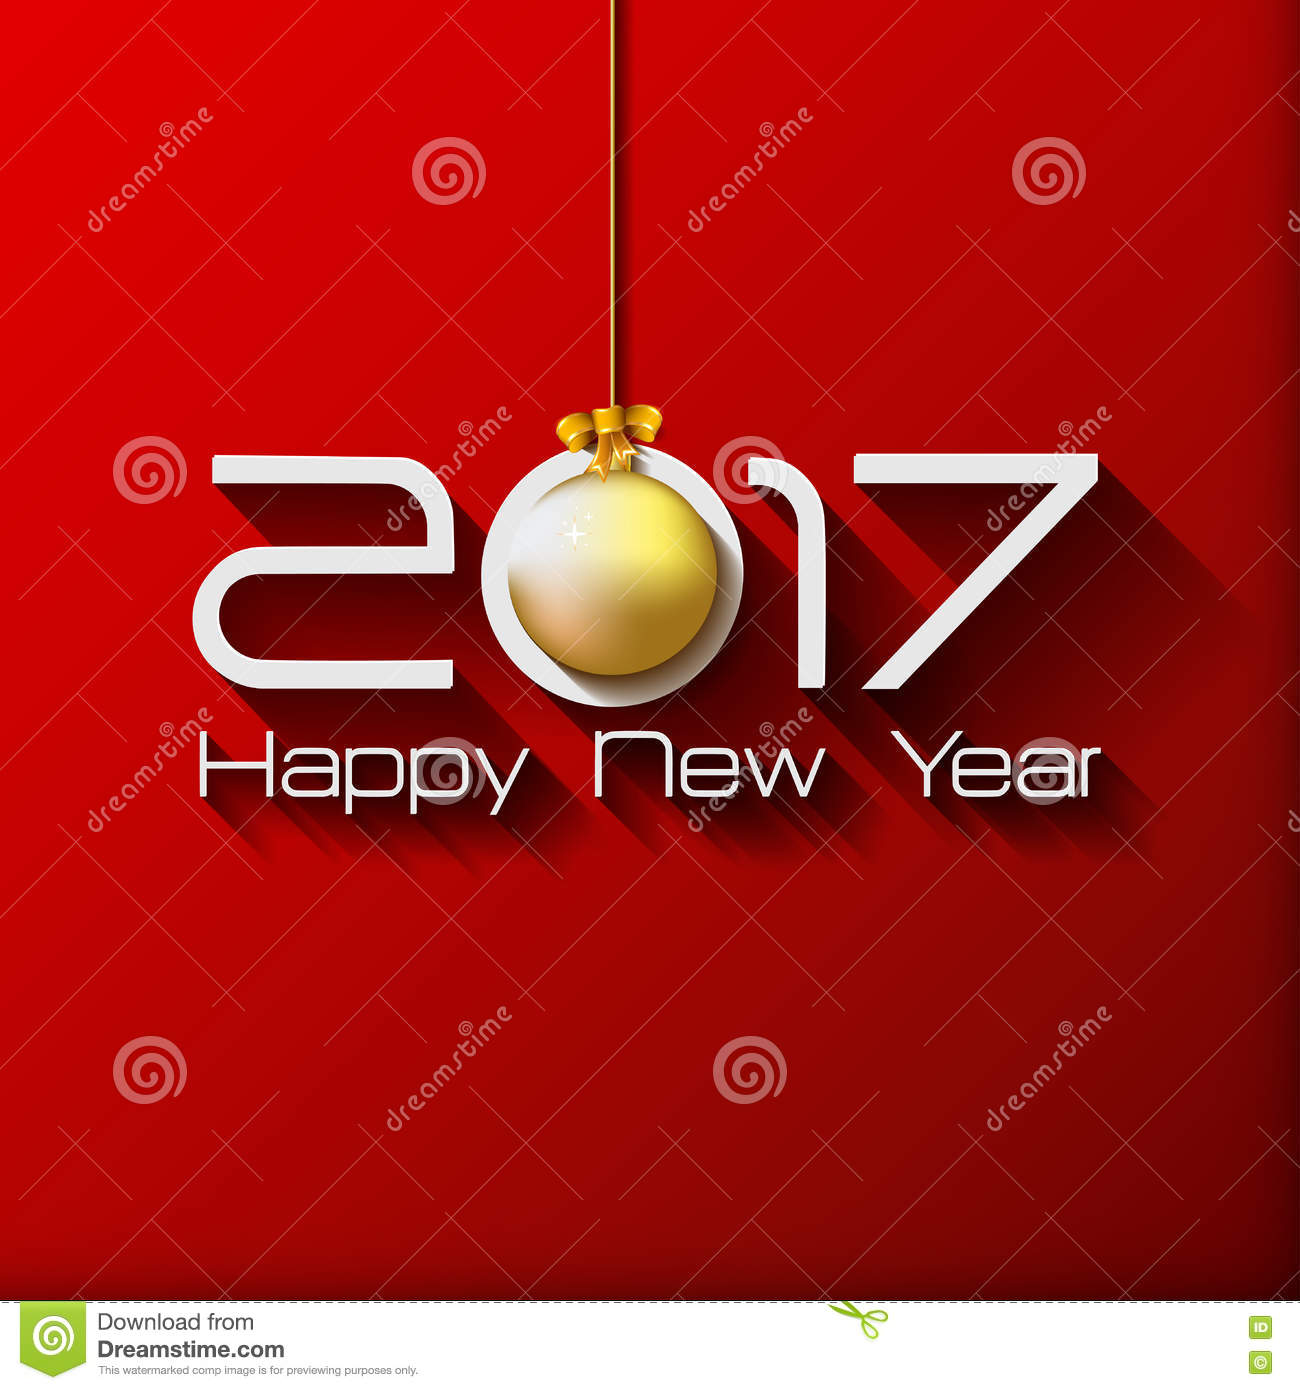 2017 happy new year gift greeting card with gold